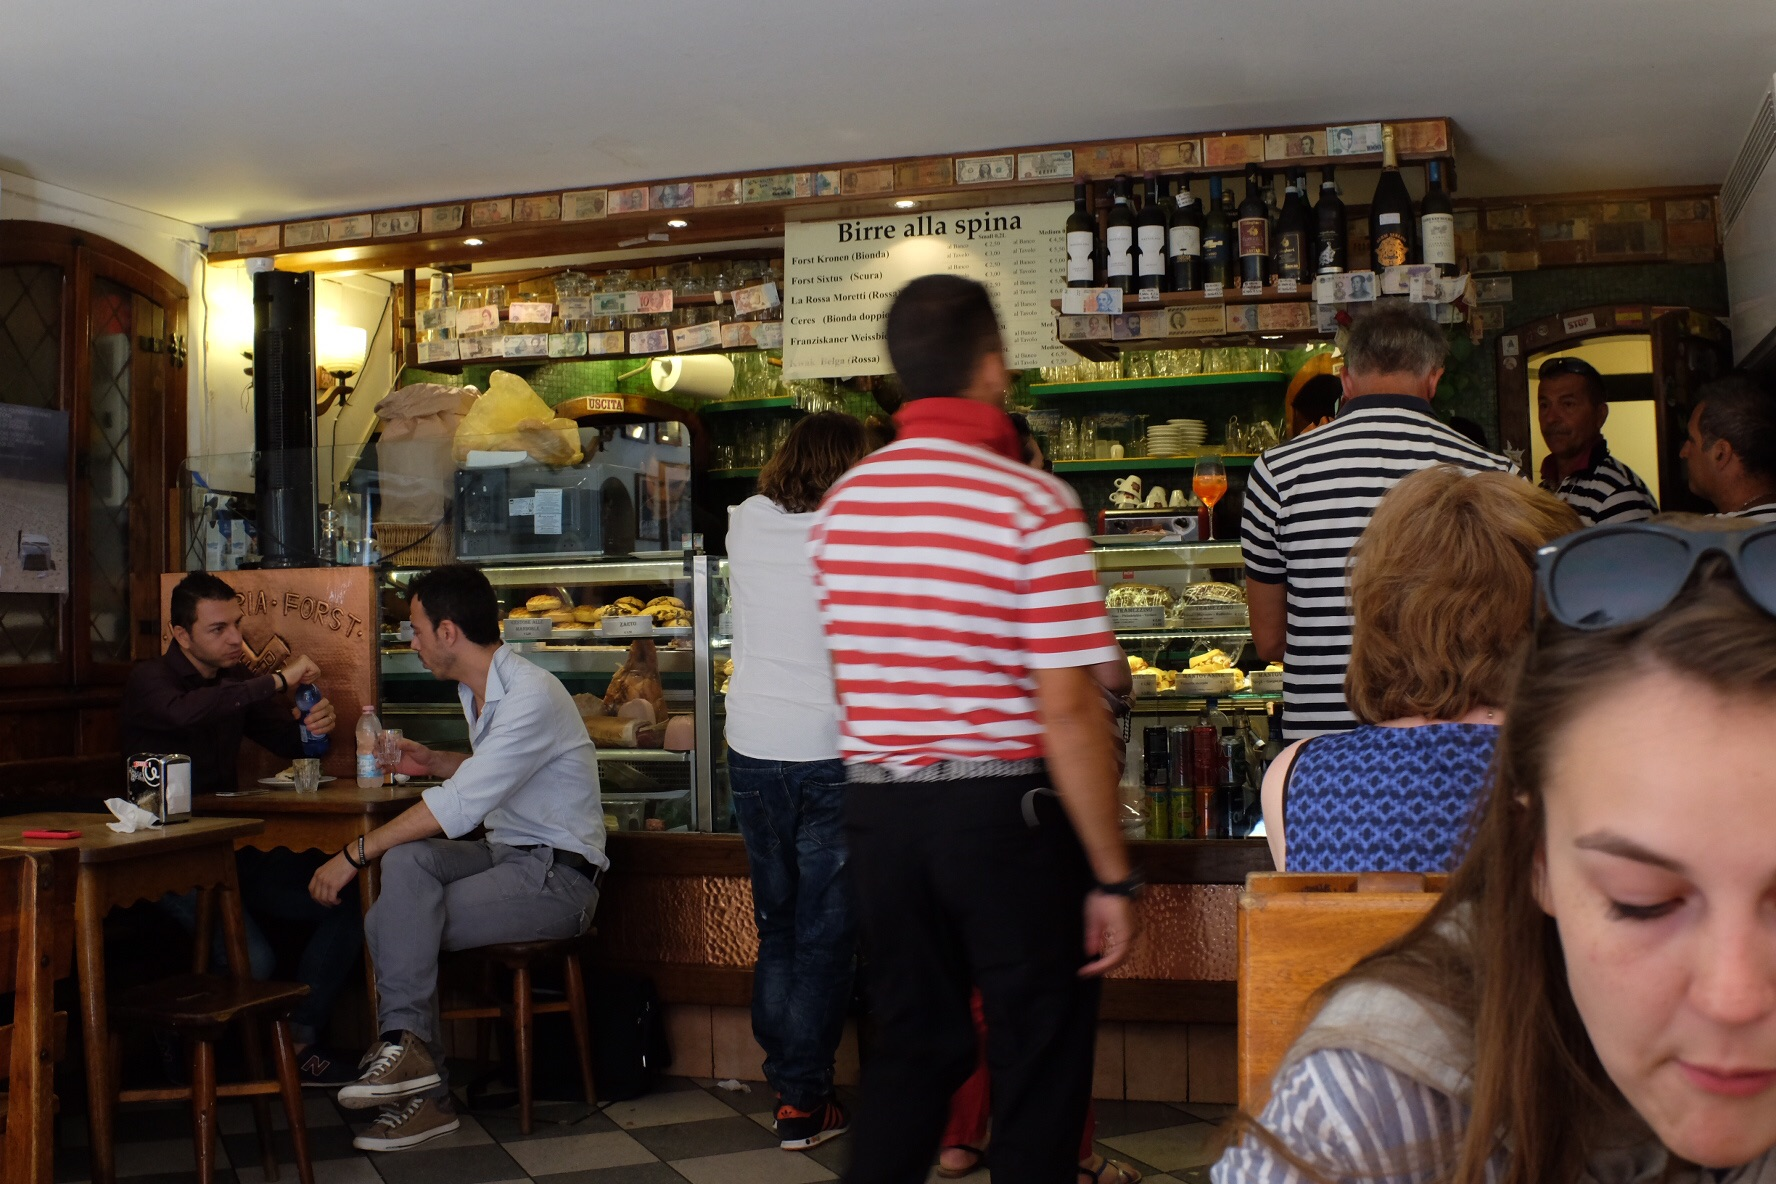 Lunch at Birreria Forst. If it's good enough for gondoliers ...